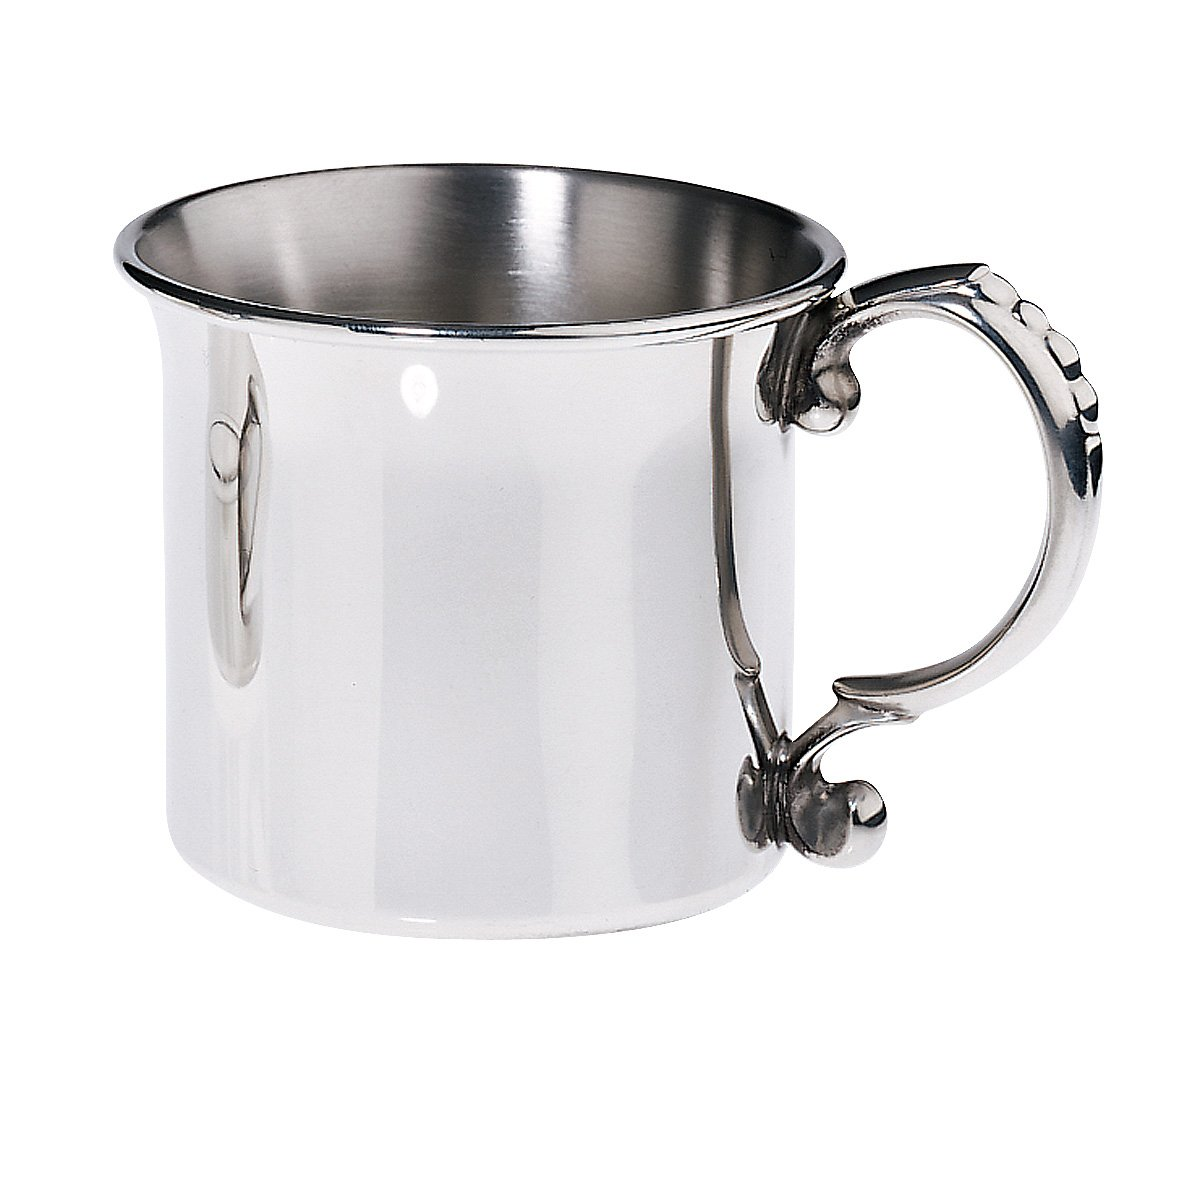 Lunt Pewter Classic Baby Cup, 6-Ounce Reed & Barton LP112